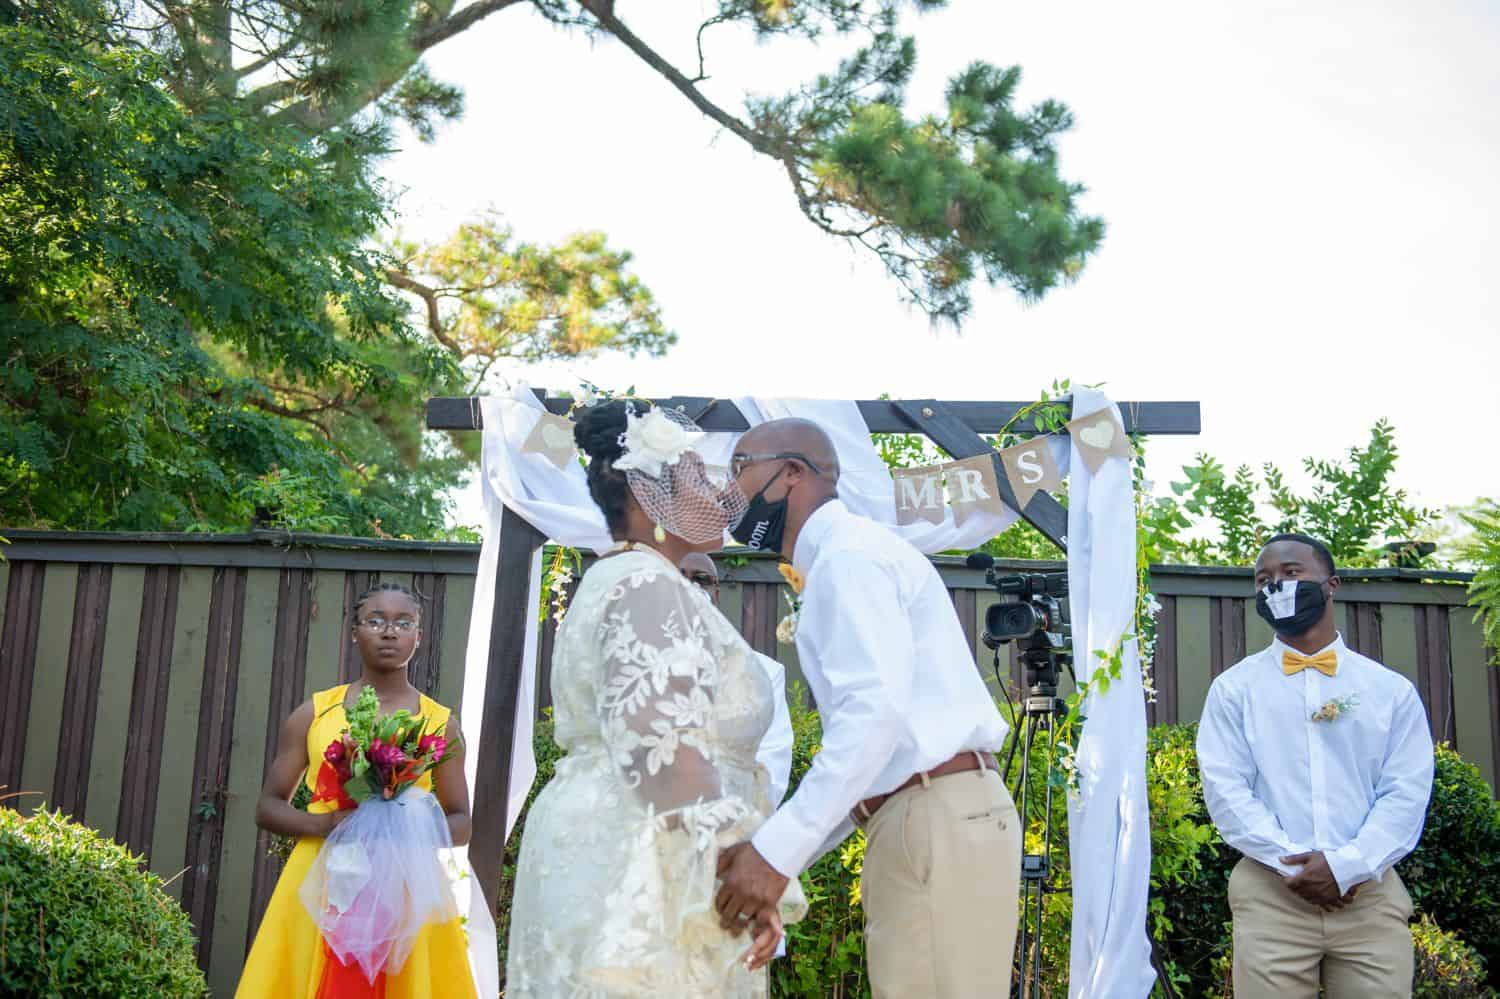 A bride and groom share their first kiss as husband and wife in front of their mask-wearing guests during COVID-19